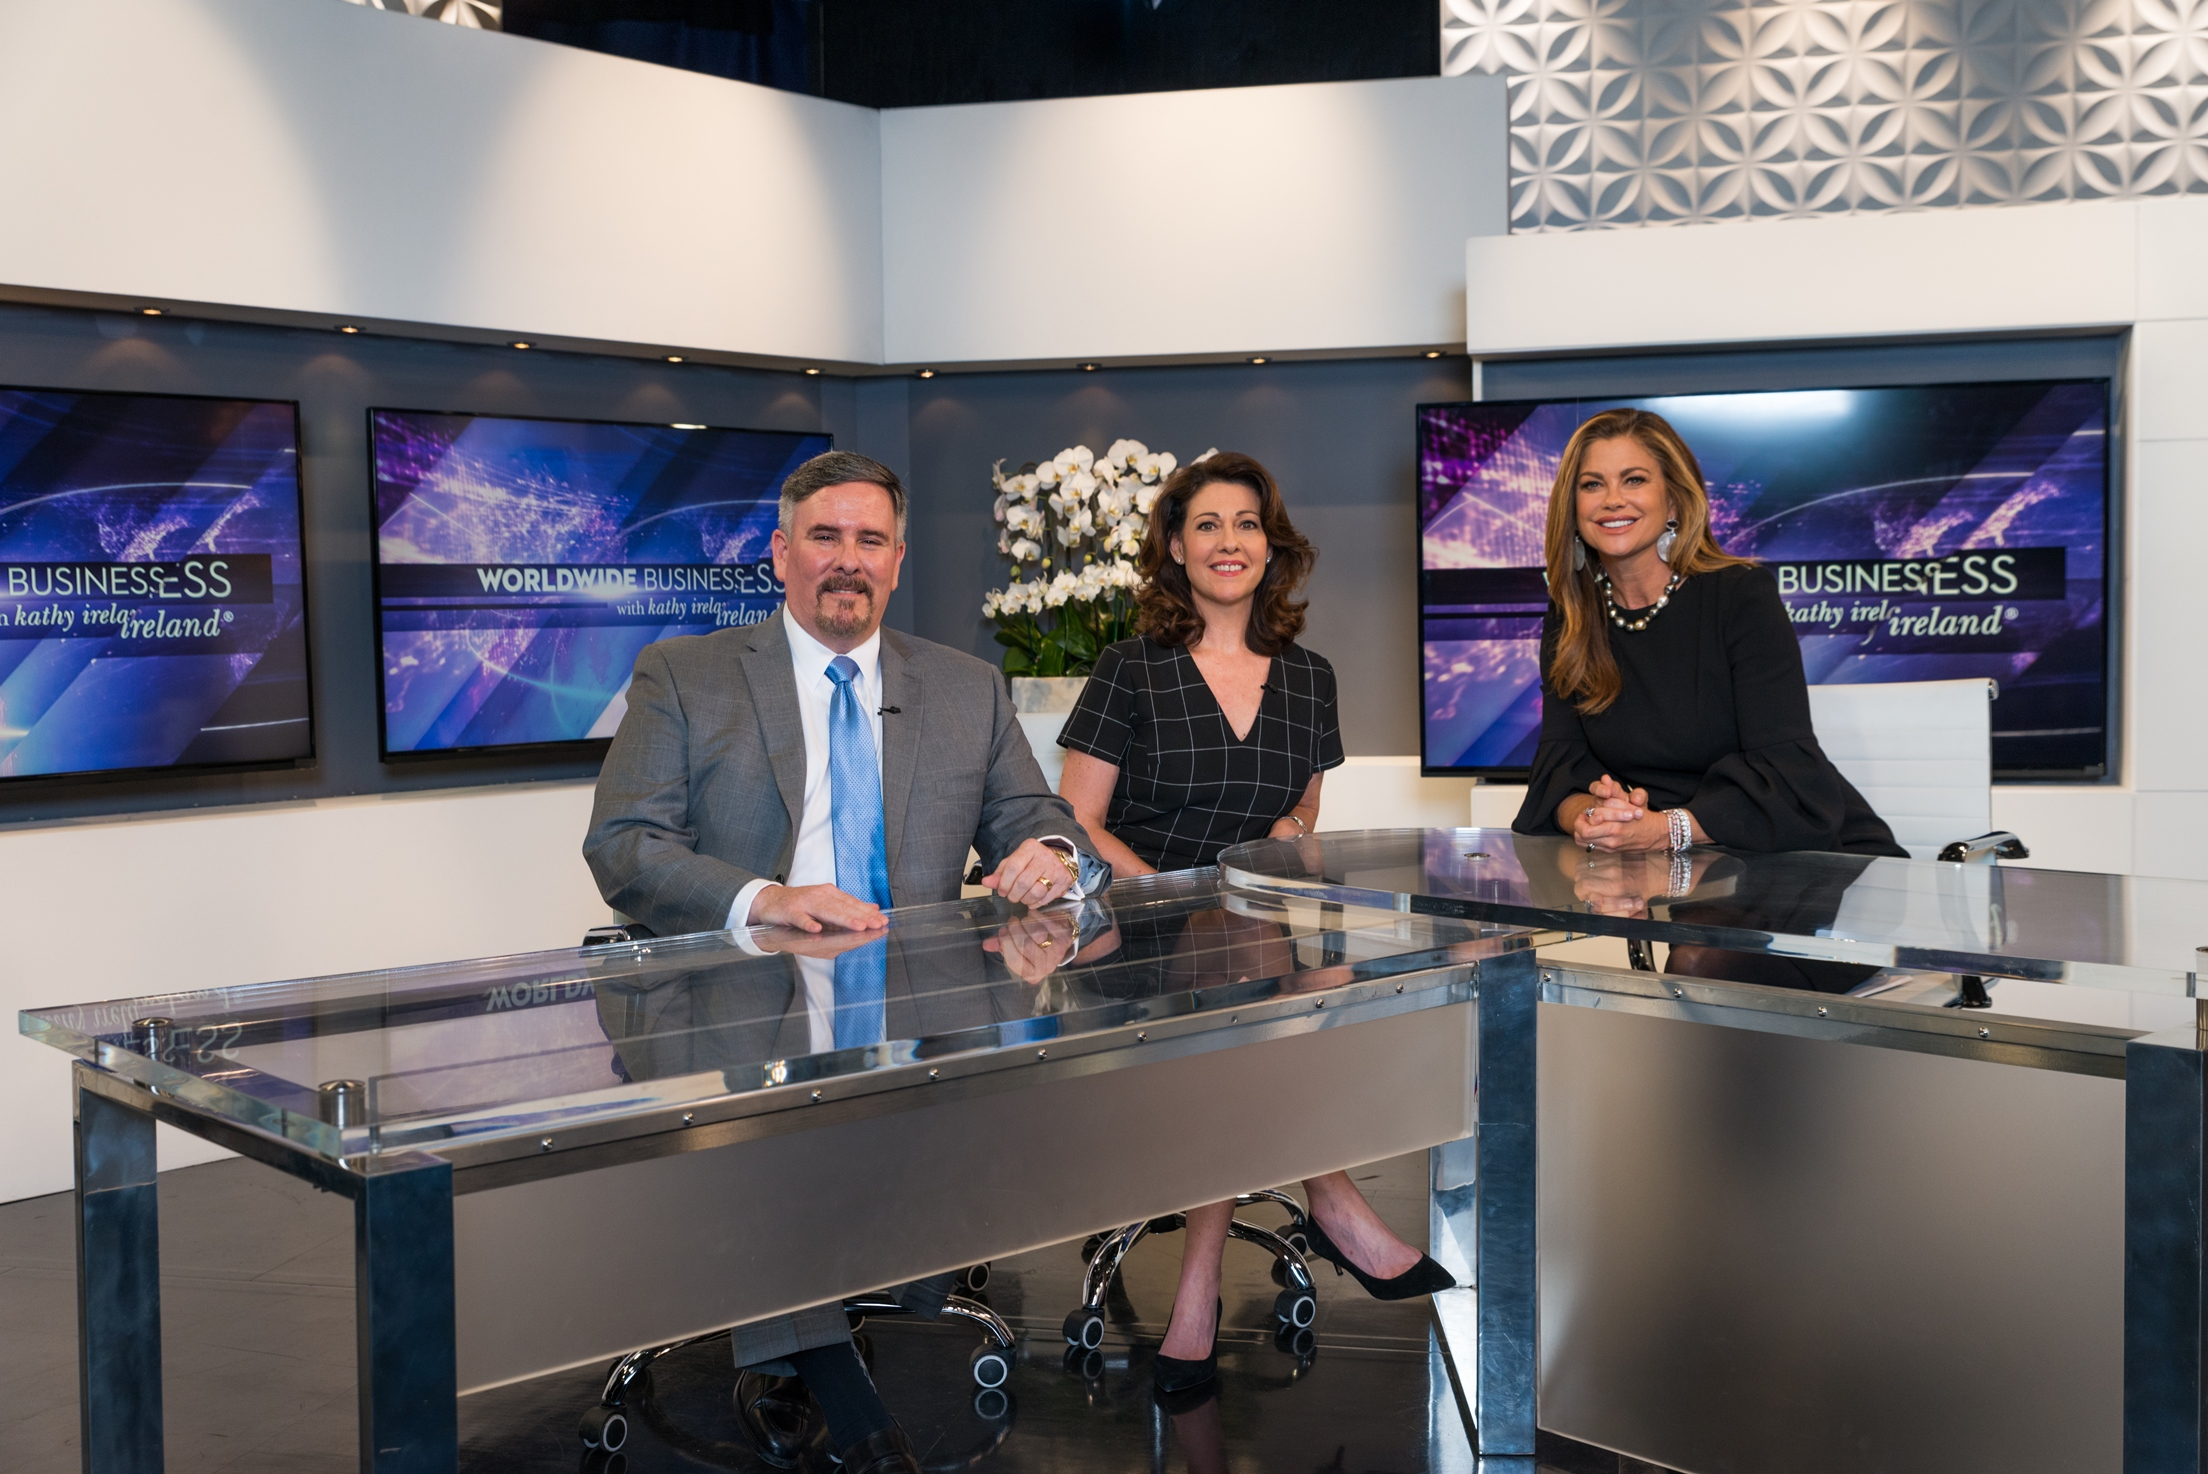 Worldwide Business with kathy ireland® Took A Closer Look At How Cogent Analytics Is On A Mission To Improve Small Businesses In America